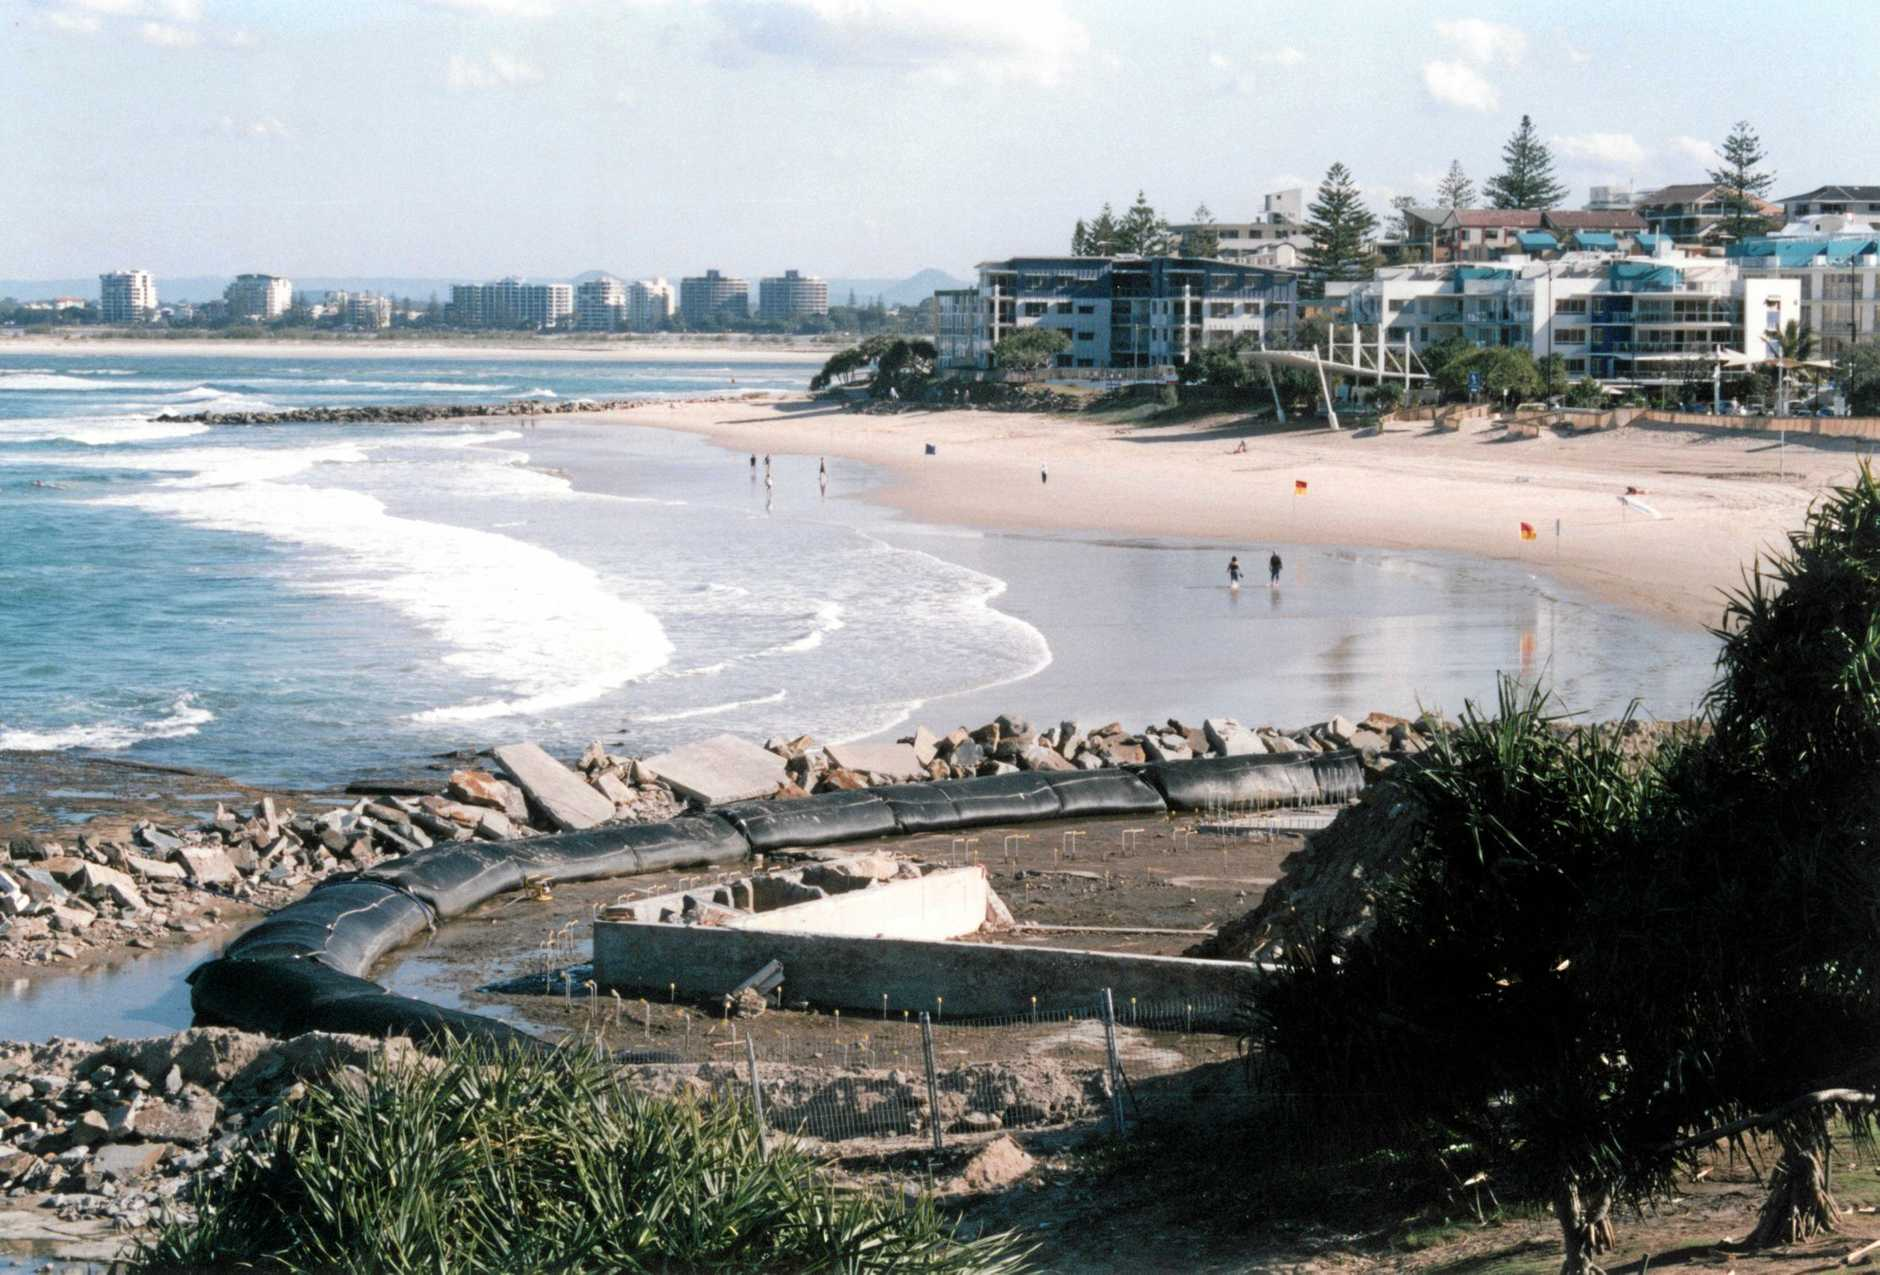 Kings Beach foreshore, ca 2006, showing work on the Sir Francis Nicklin Memorial 25m pool redevelopment.